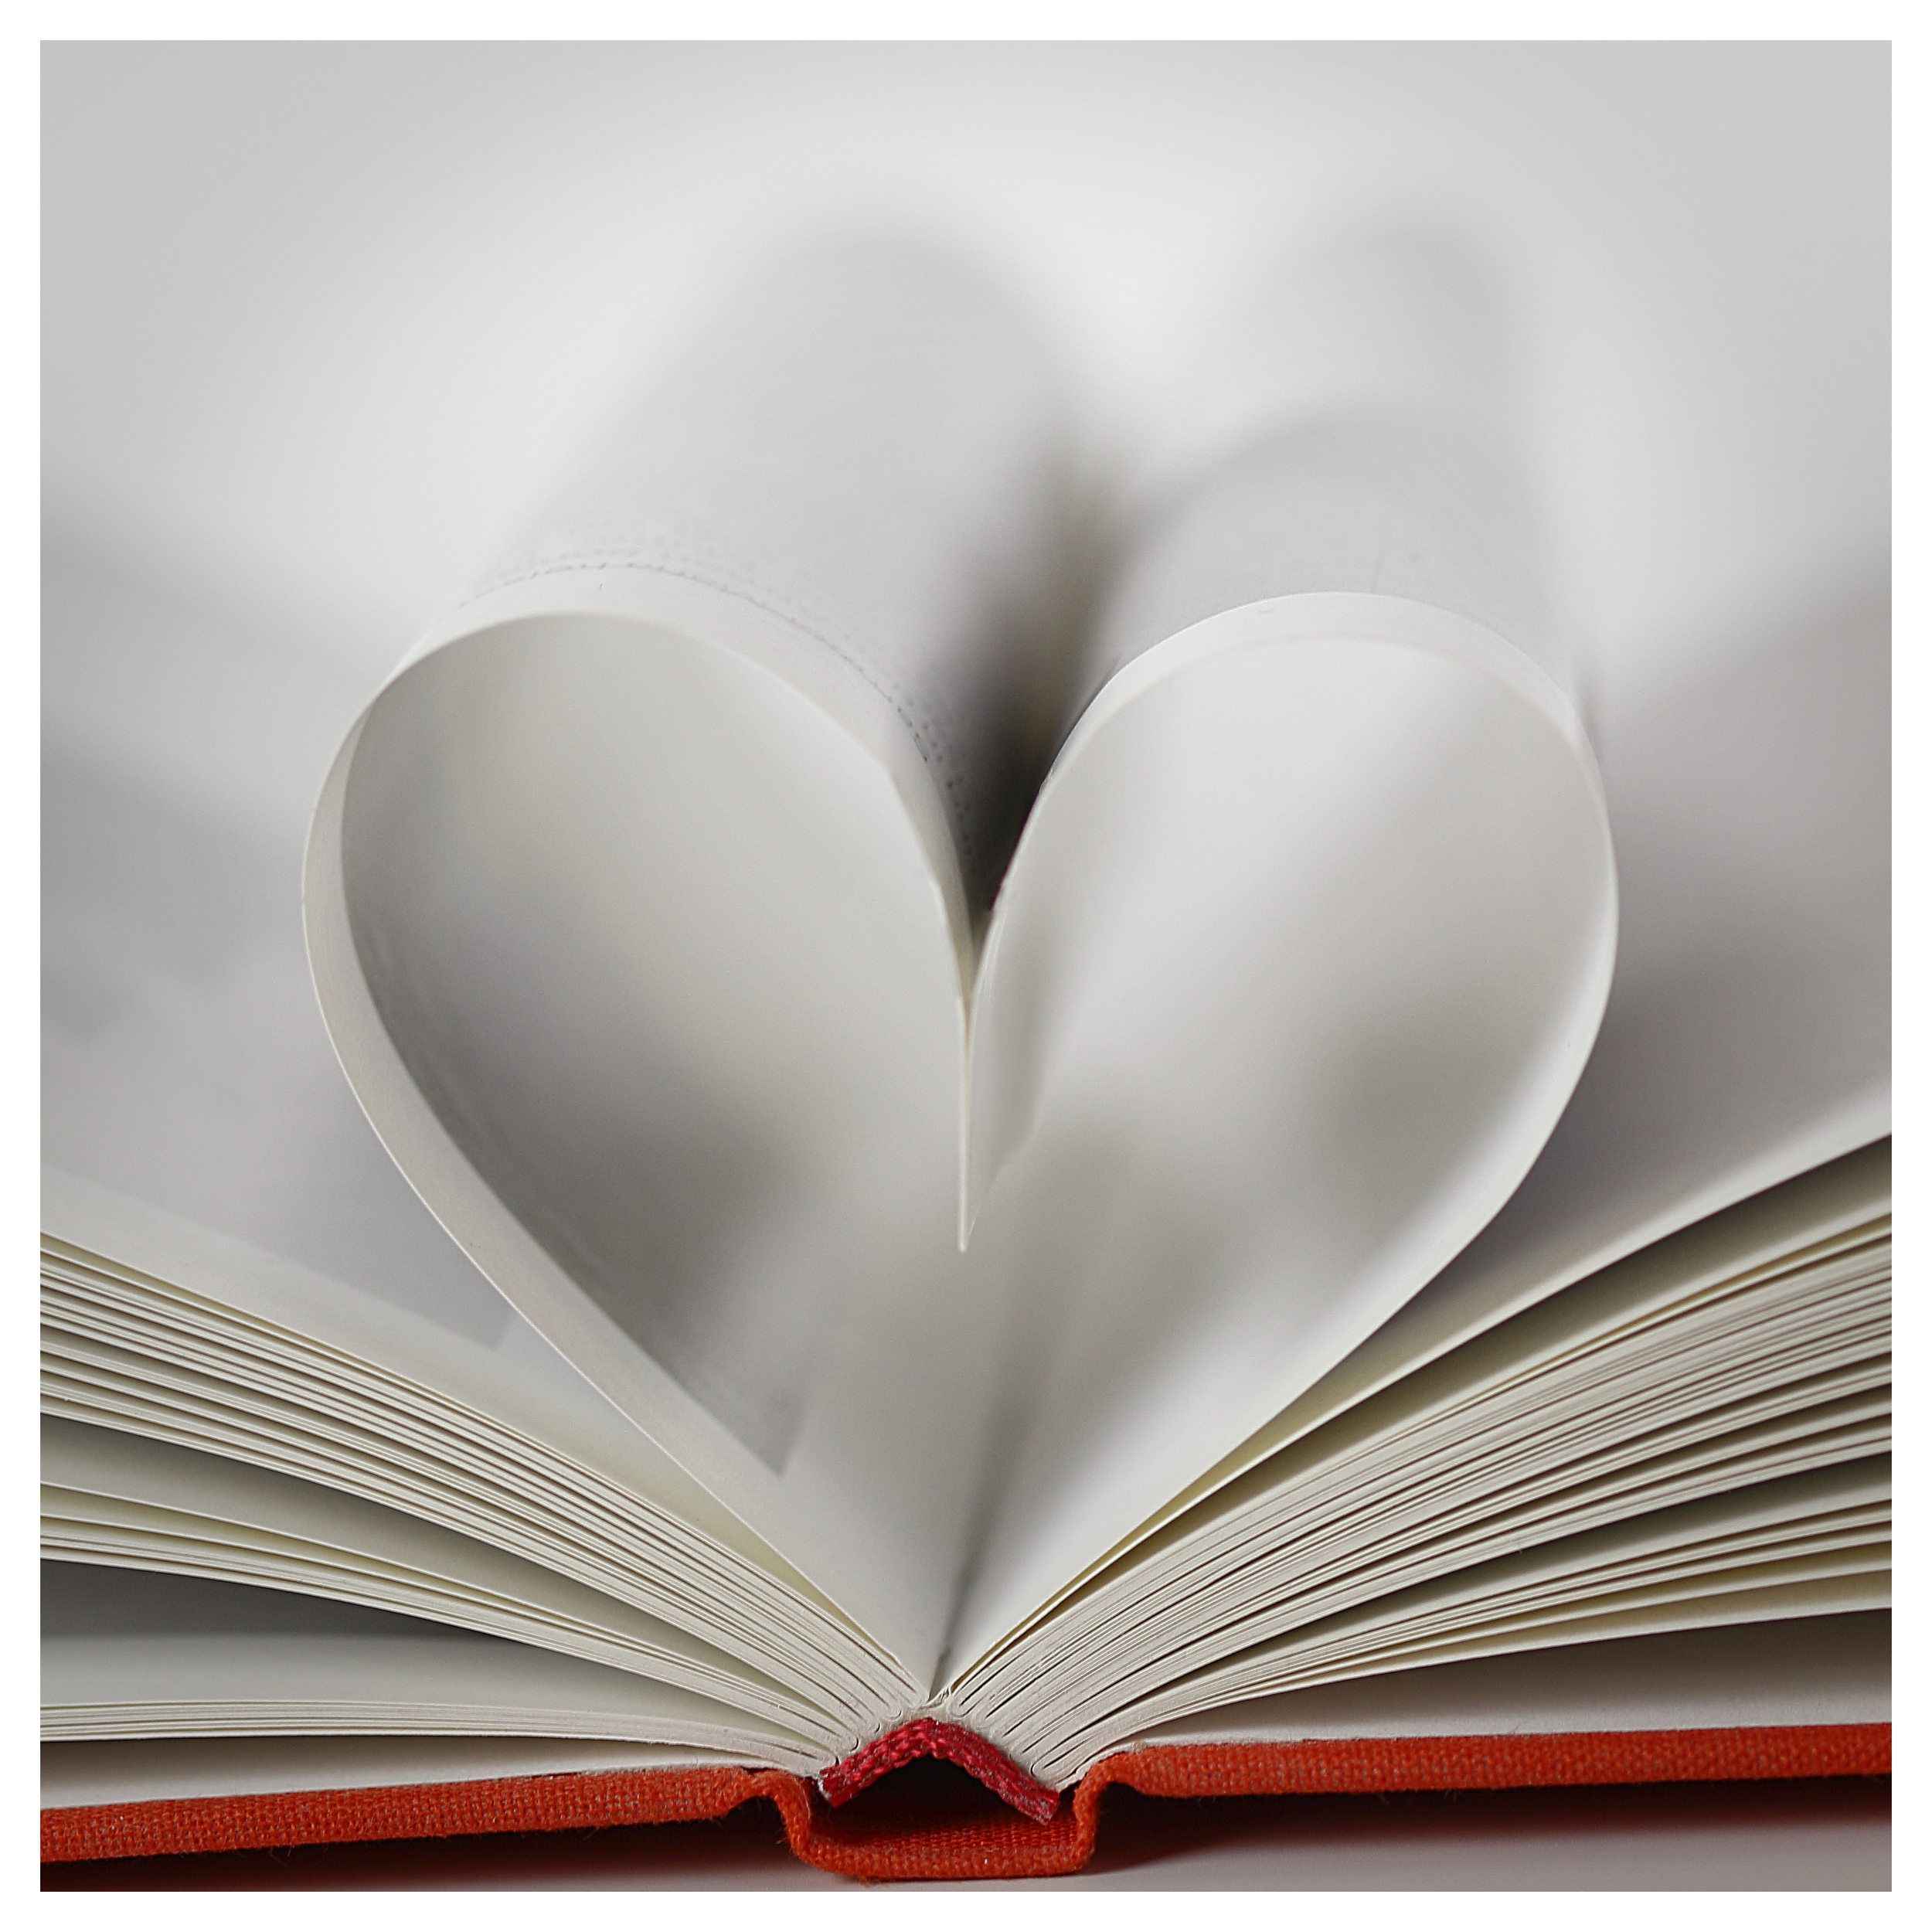 Recommended Reading List for - Attachment Healing, Relationship Help, Deepening Sexuality & Intimacy,Parenting Issues, Self-Care, Trauma Support & More.